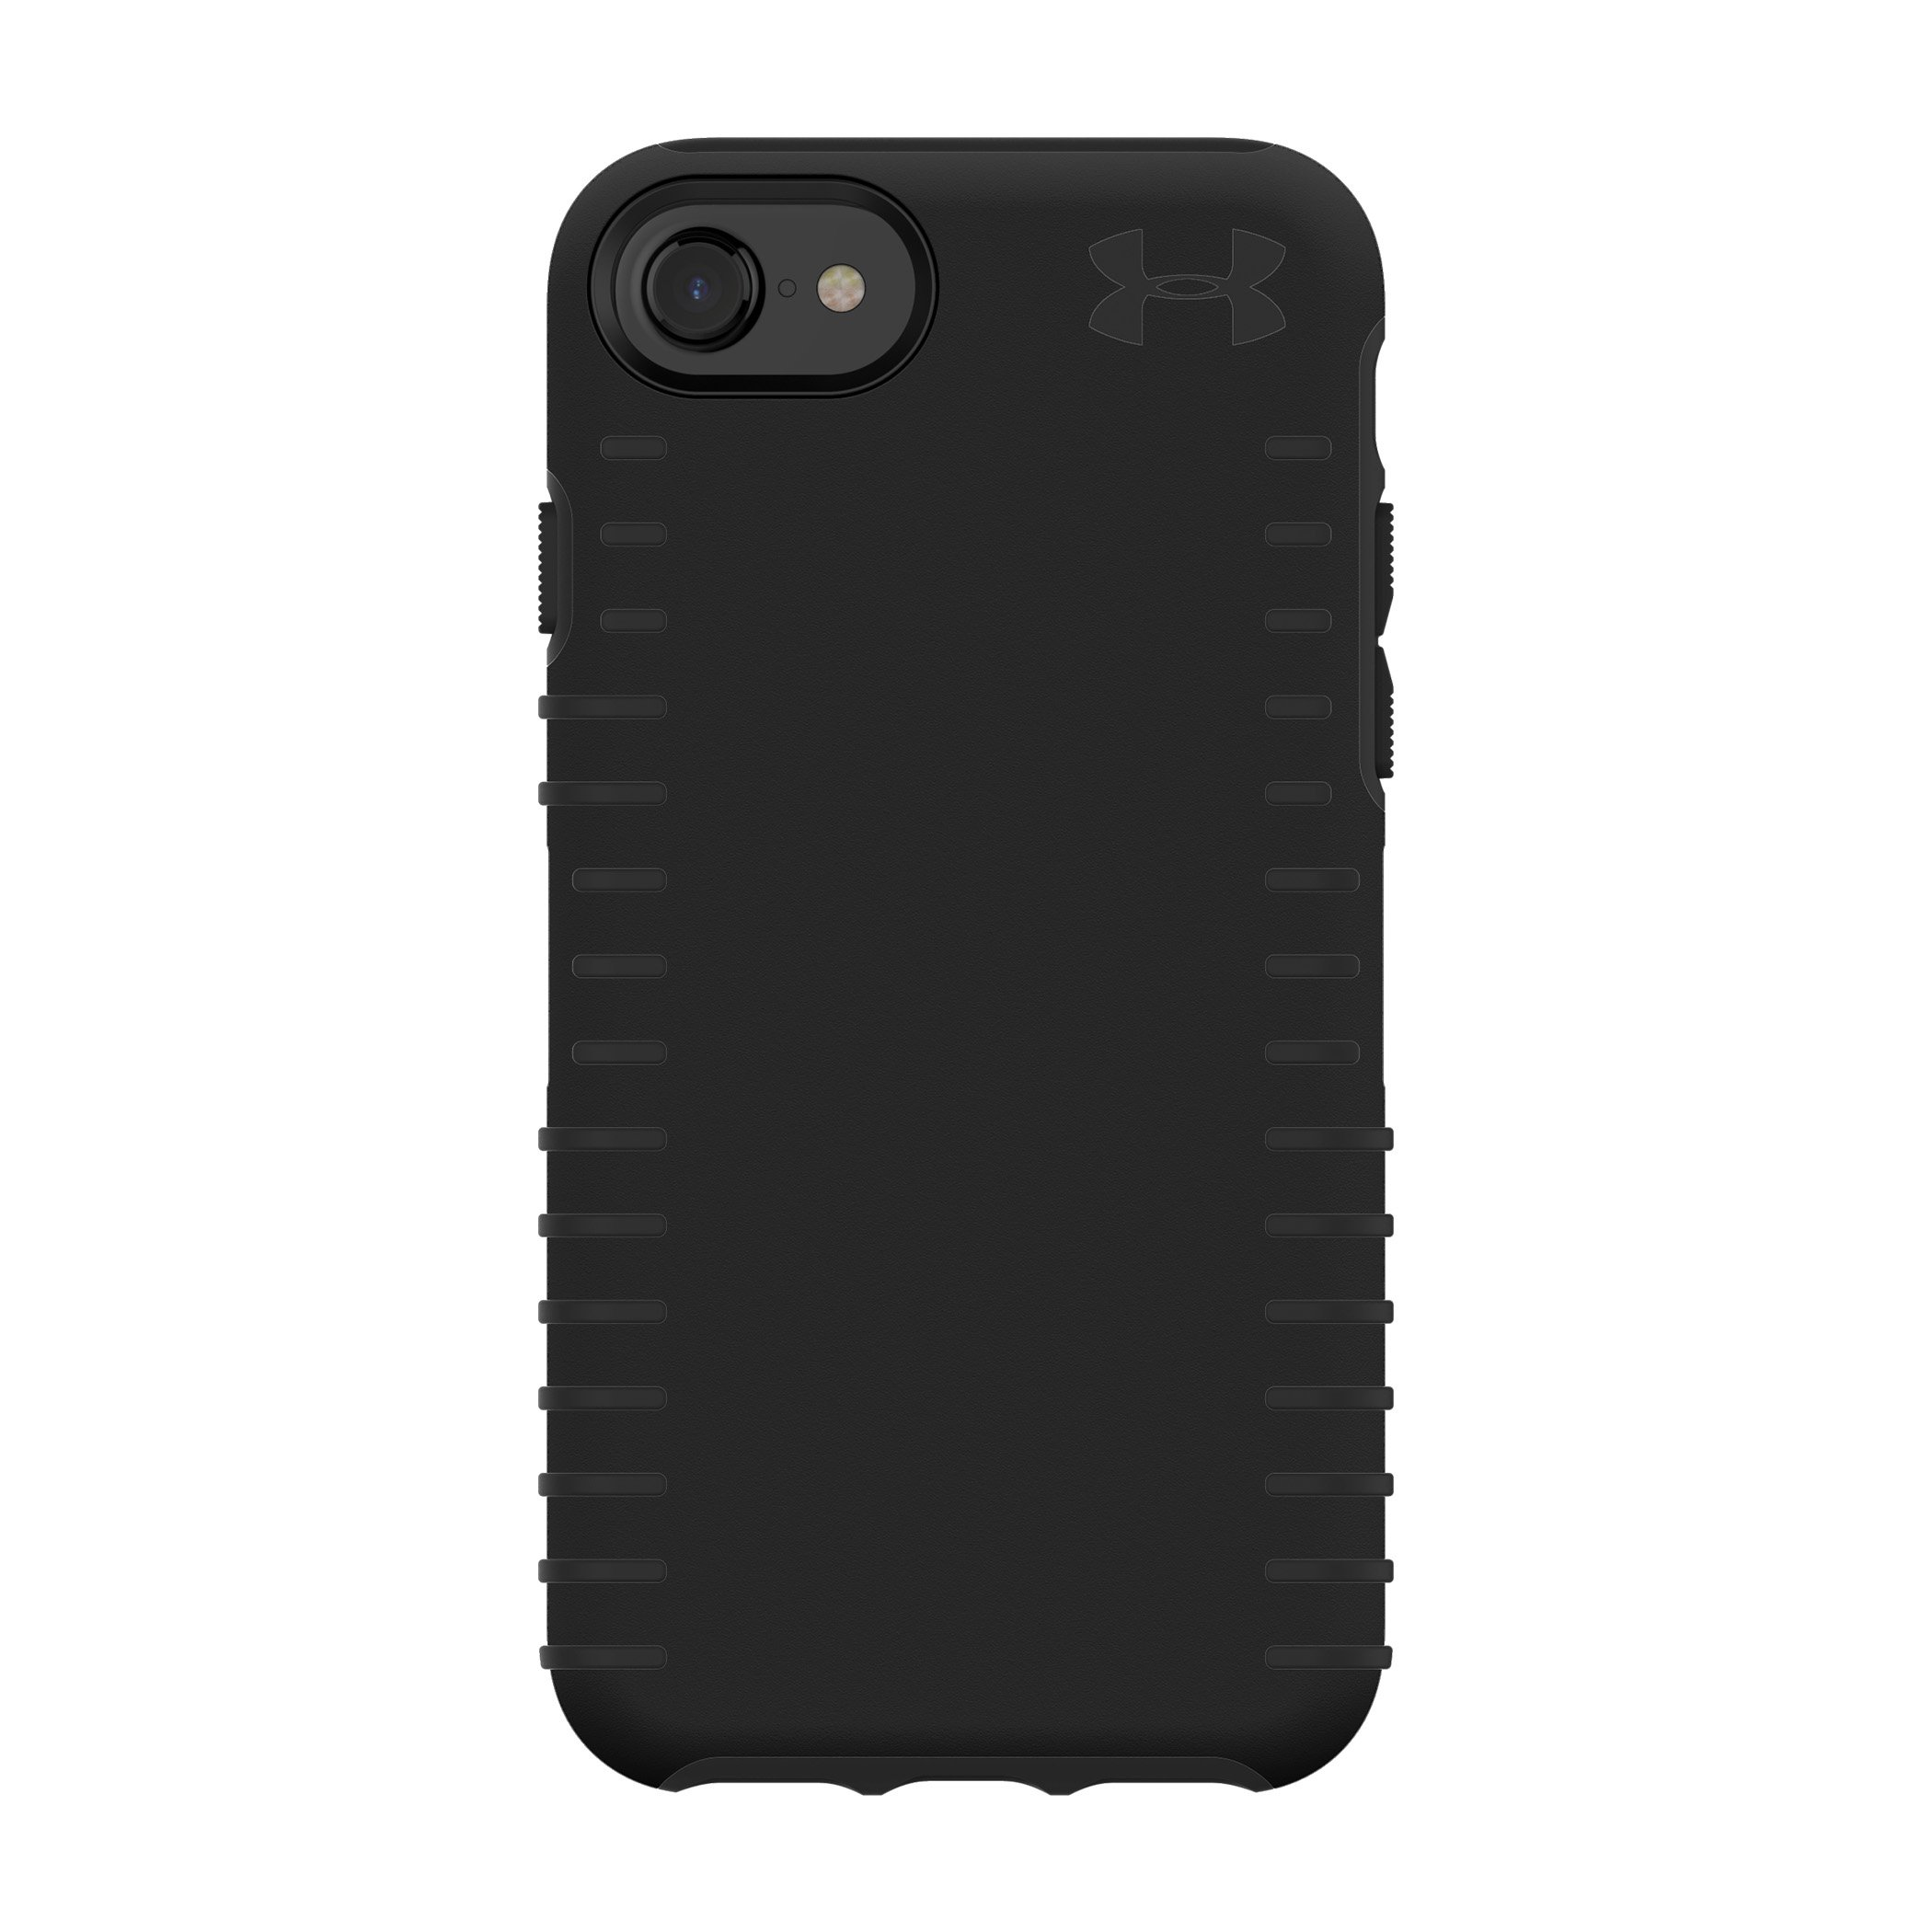 Under Armour UA Protect Grip Case for iPhone 8, iPhone 7 & iPhone 6/6s - Black/Black